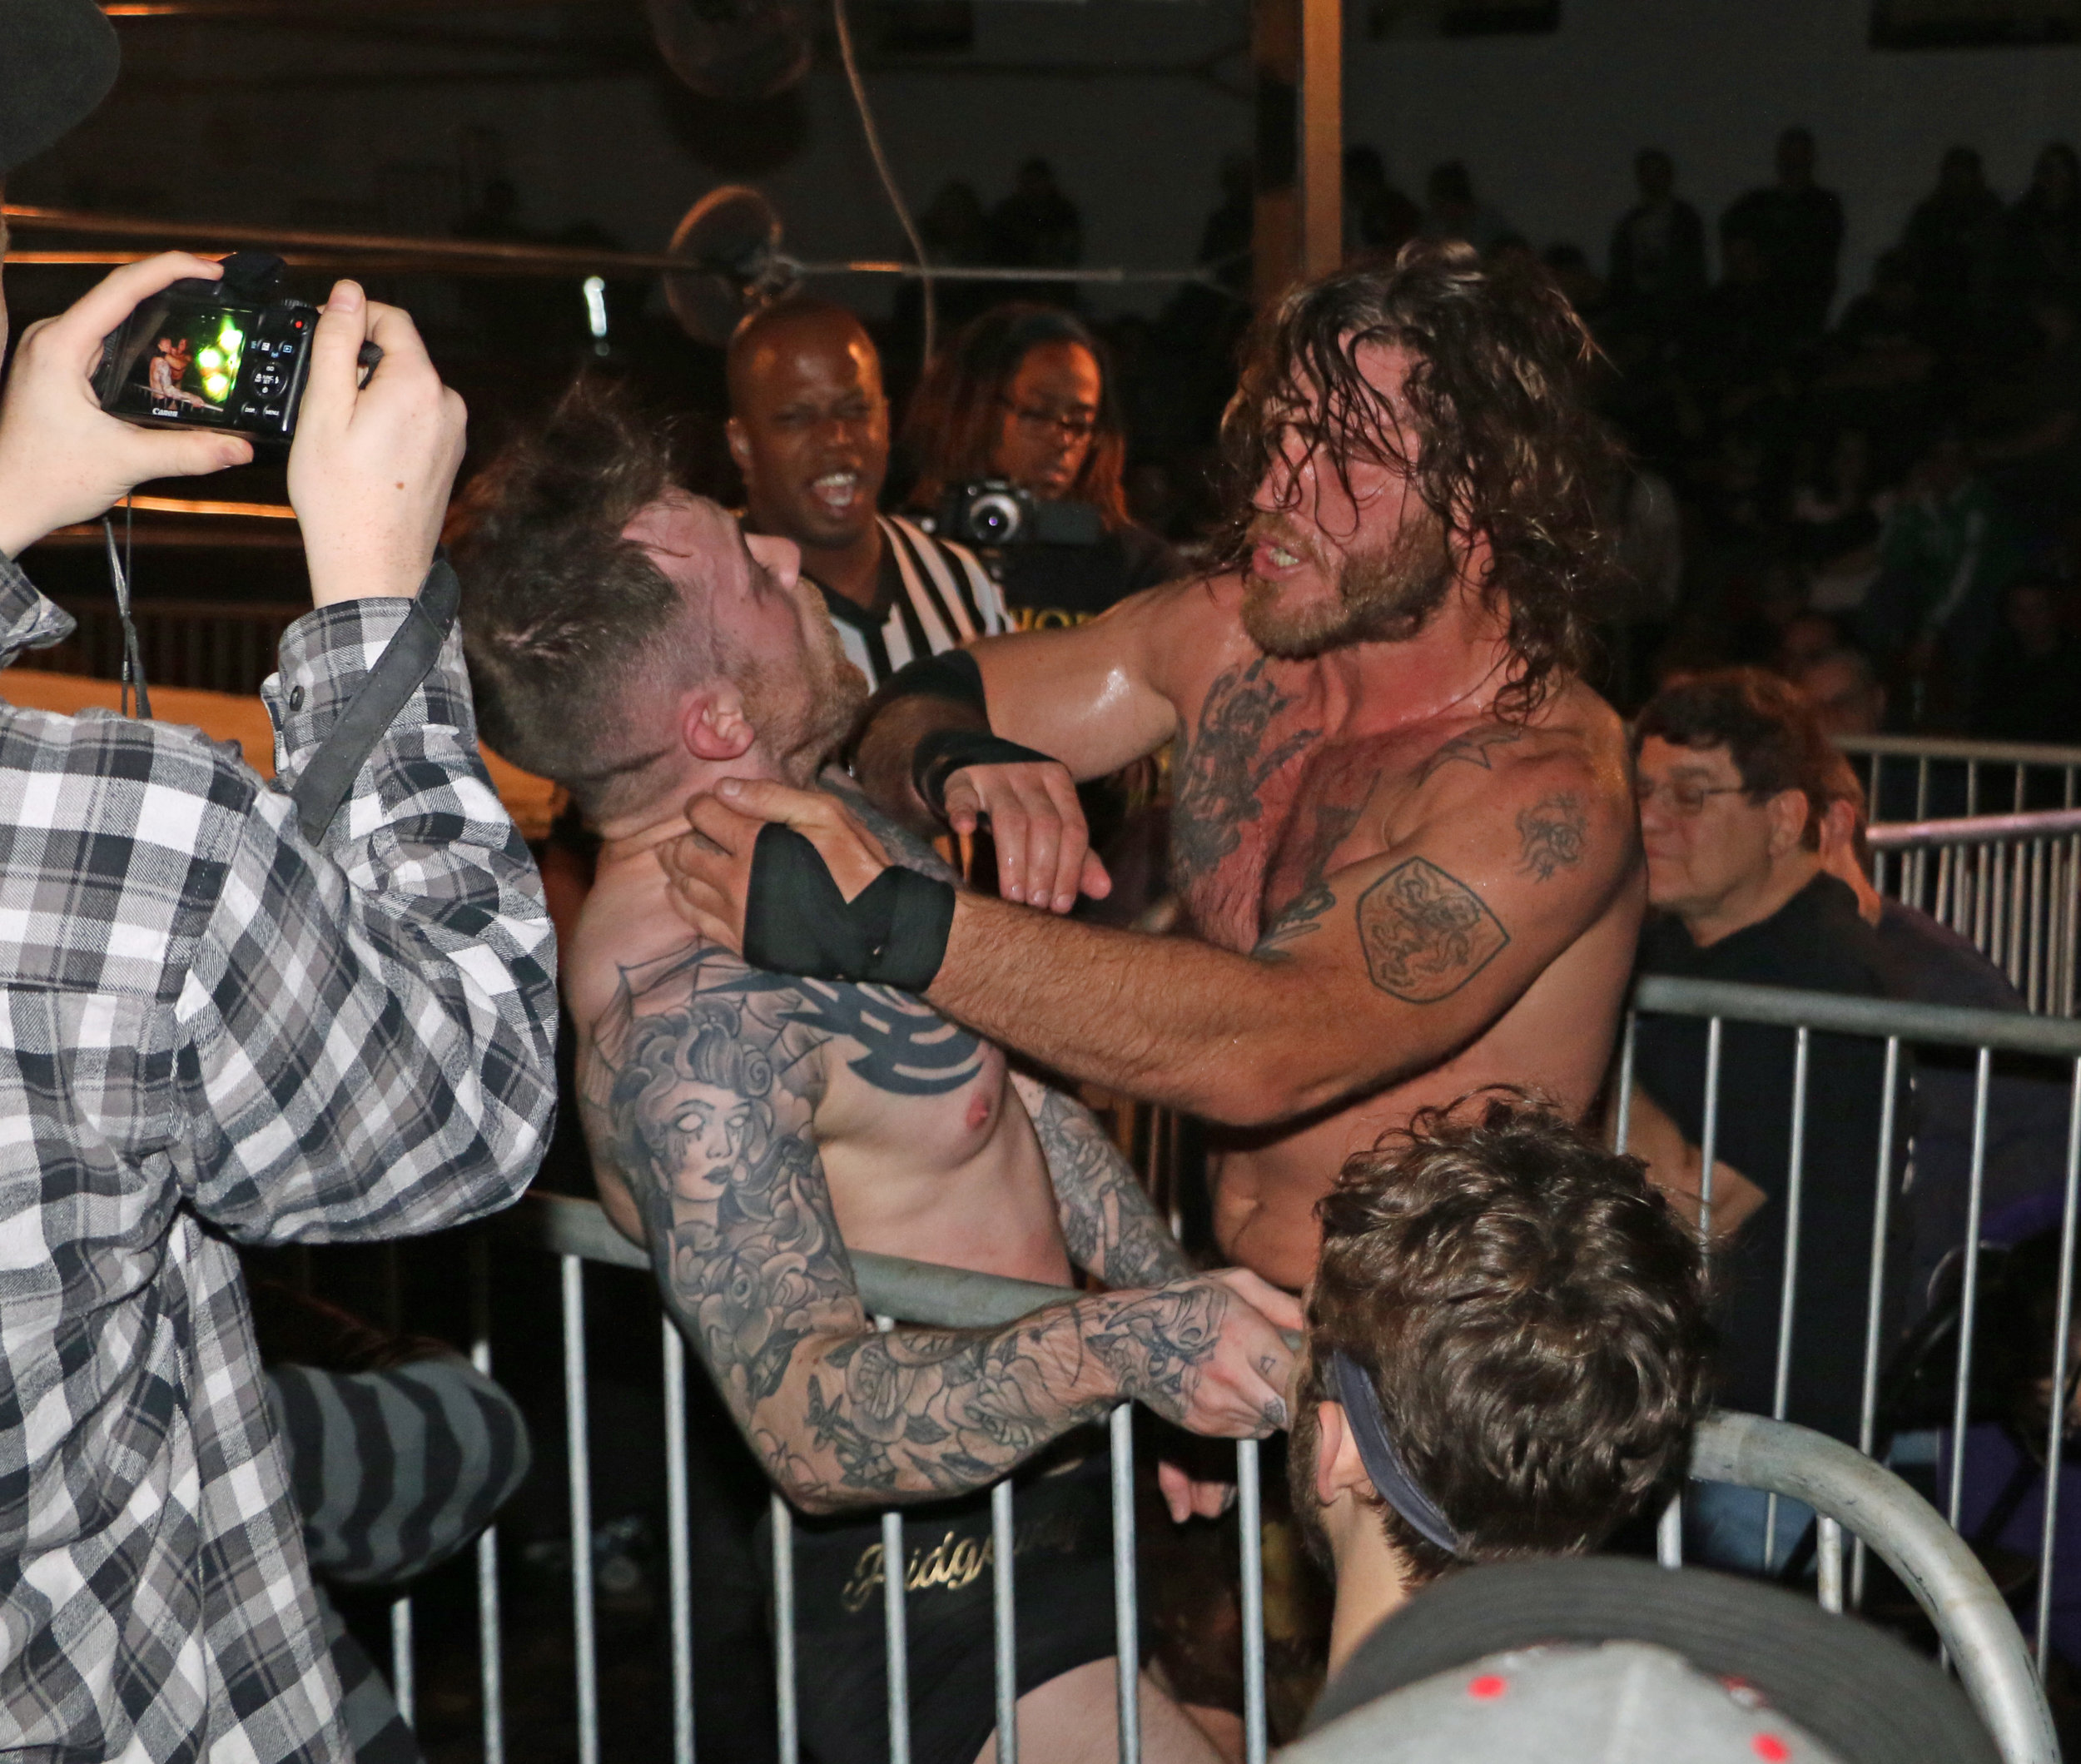 """""""Filthy"""" Tom Lawlor, right, fighting Chris Ridgeway at Warrior Wrestling 5, will appear at GCW/BLP's """"2 Cups Stuffed"""" on Friday night and Warrior Wrestling 6 on Sunday night.  (Photo by Mike Pankow)"""